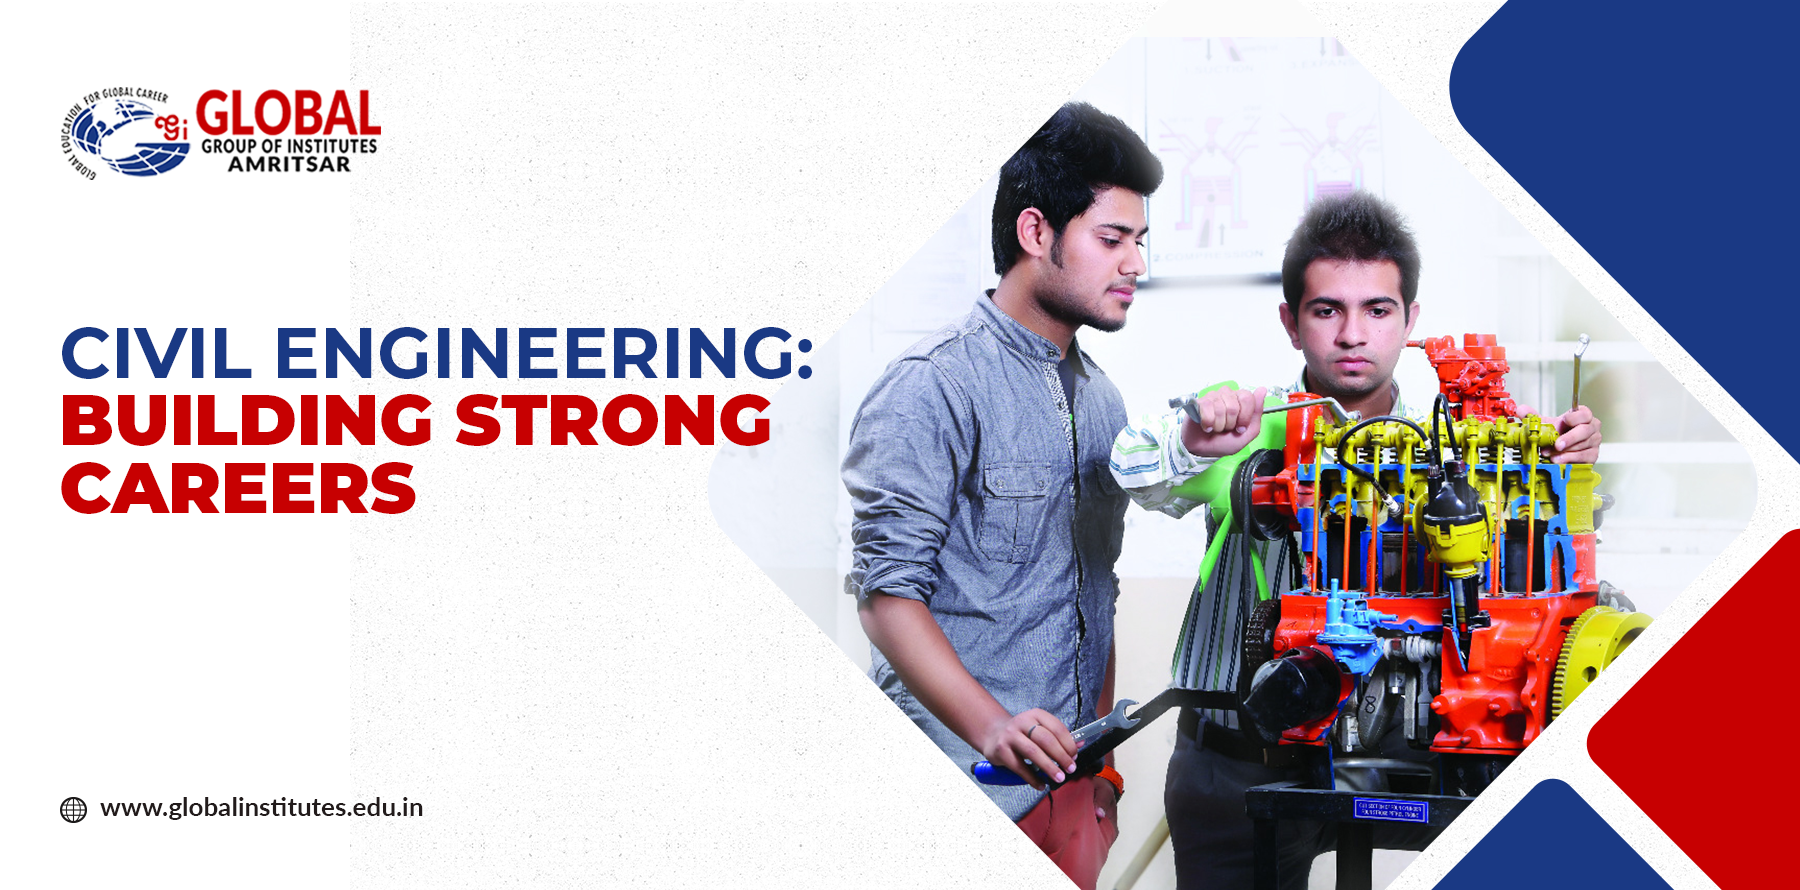 Civil Engineering: Building Strong Careers